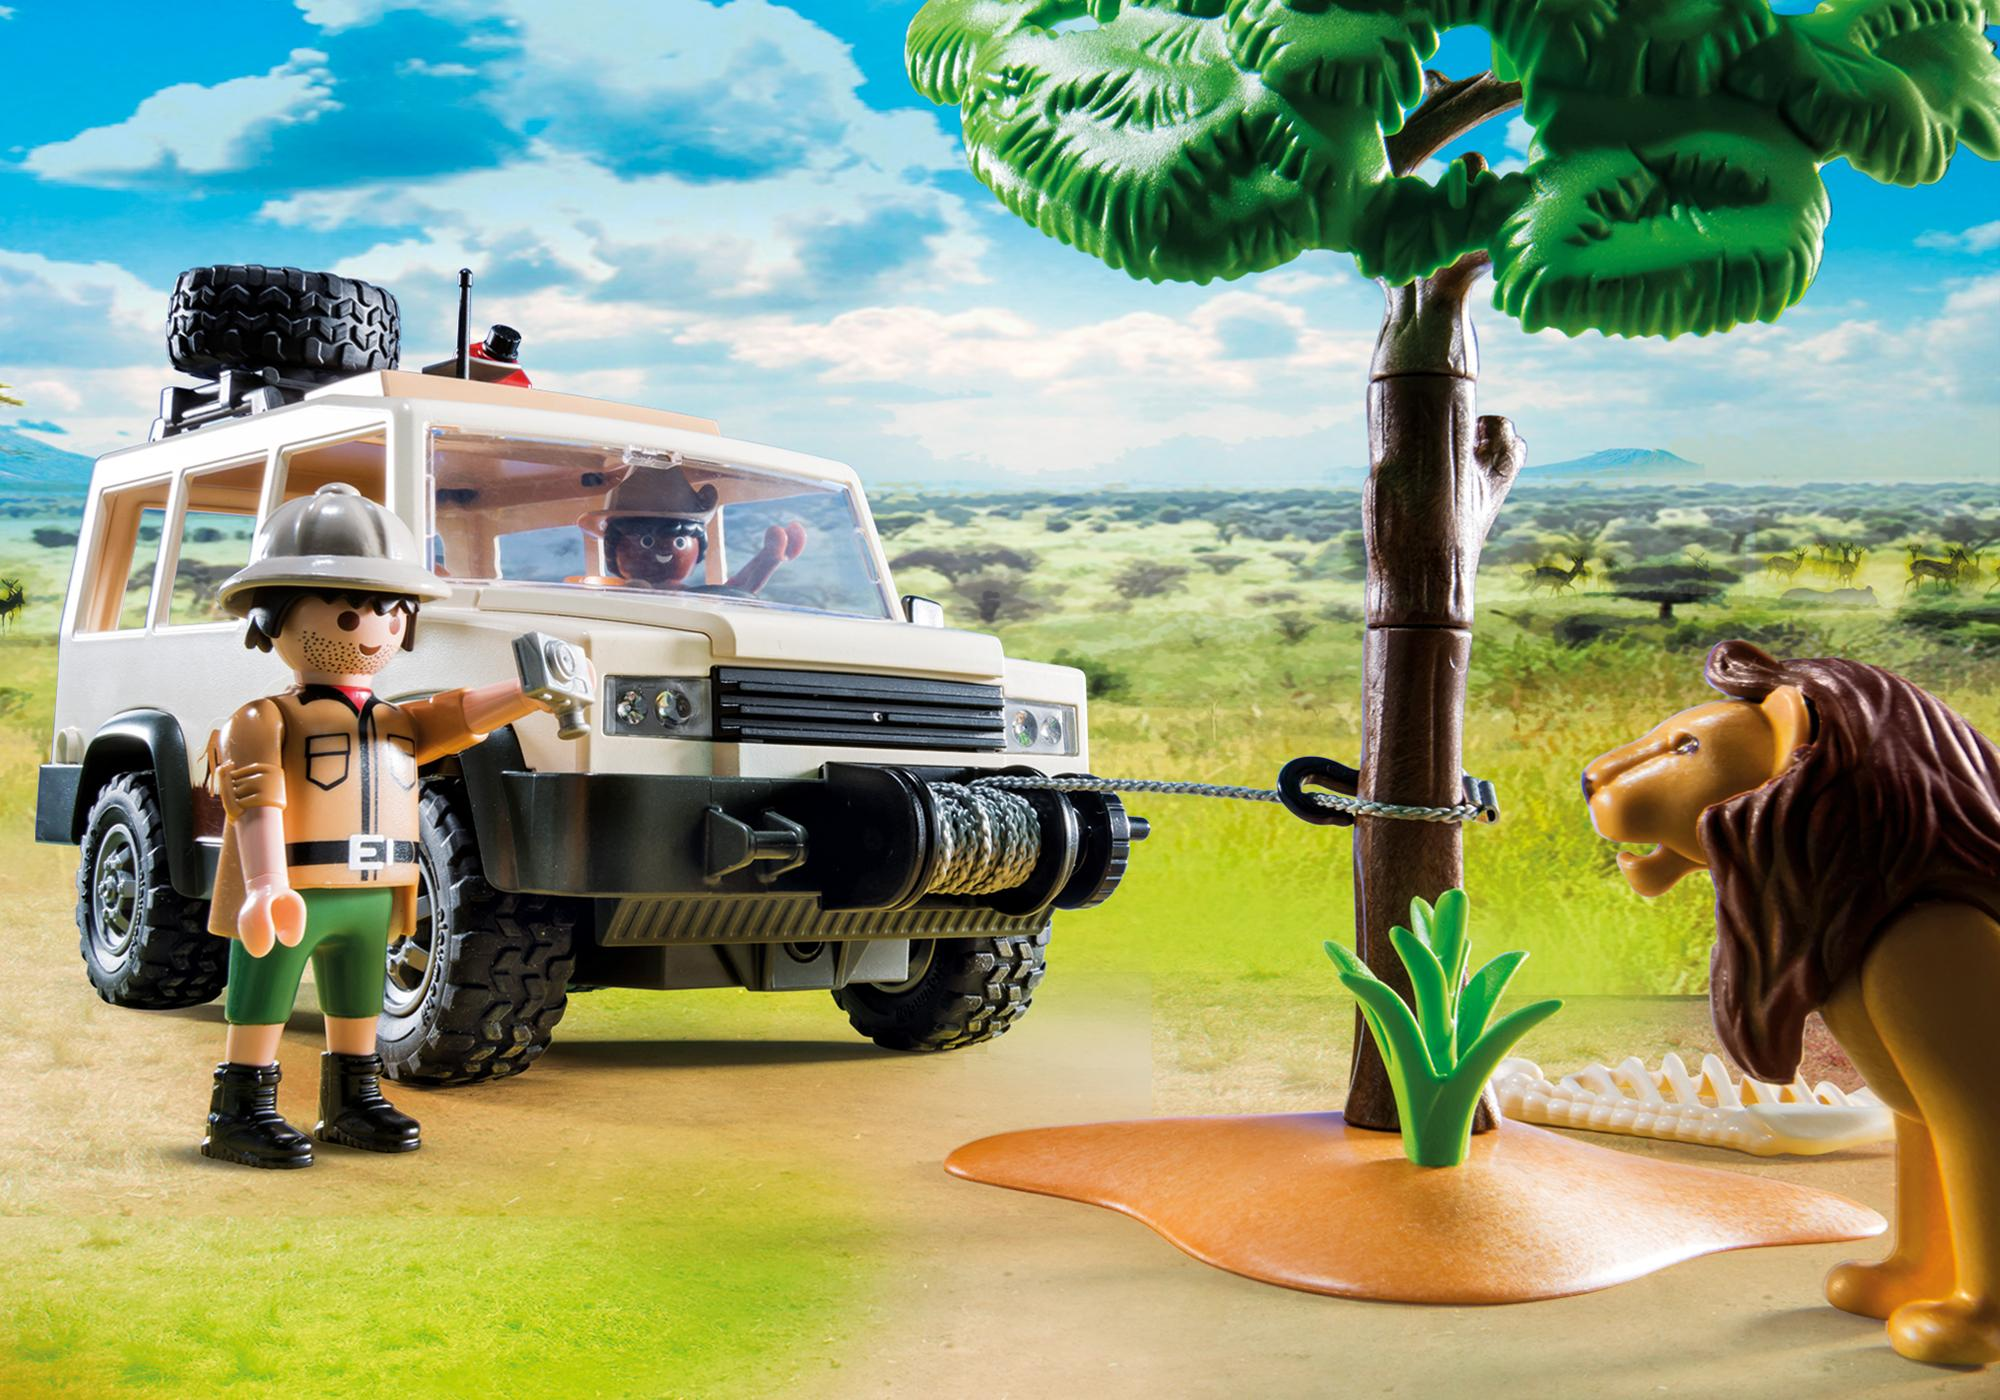 http://media.playmobil.com/i/playmobil/6798_product_extra1